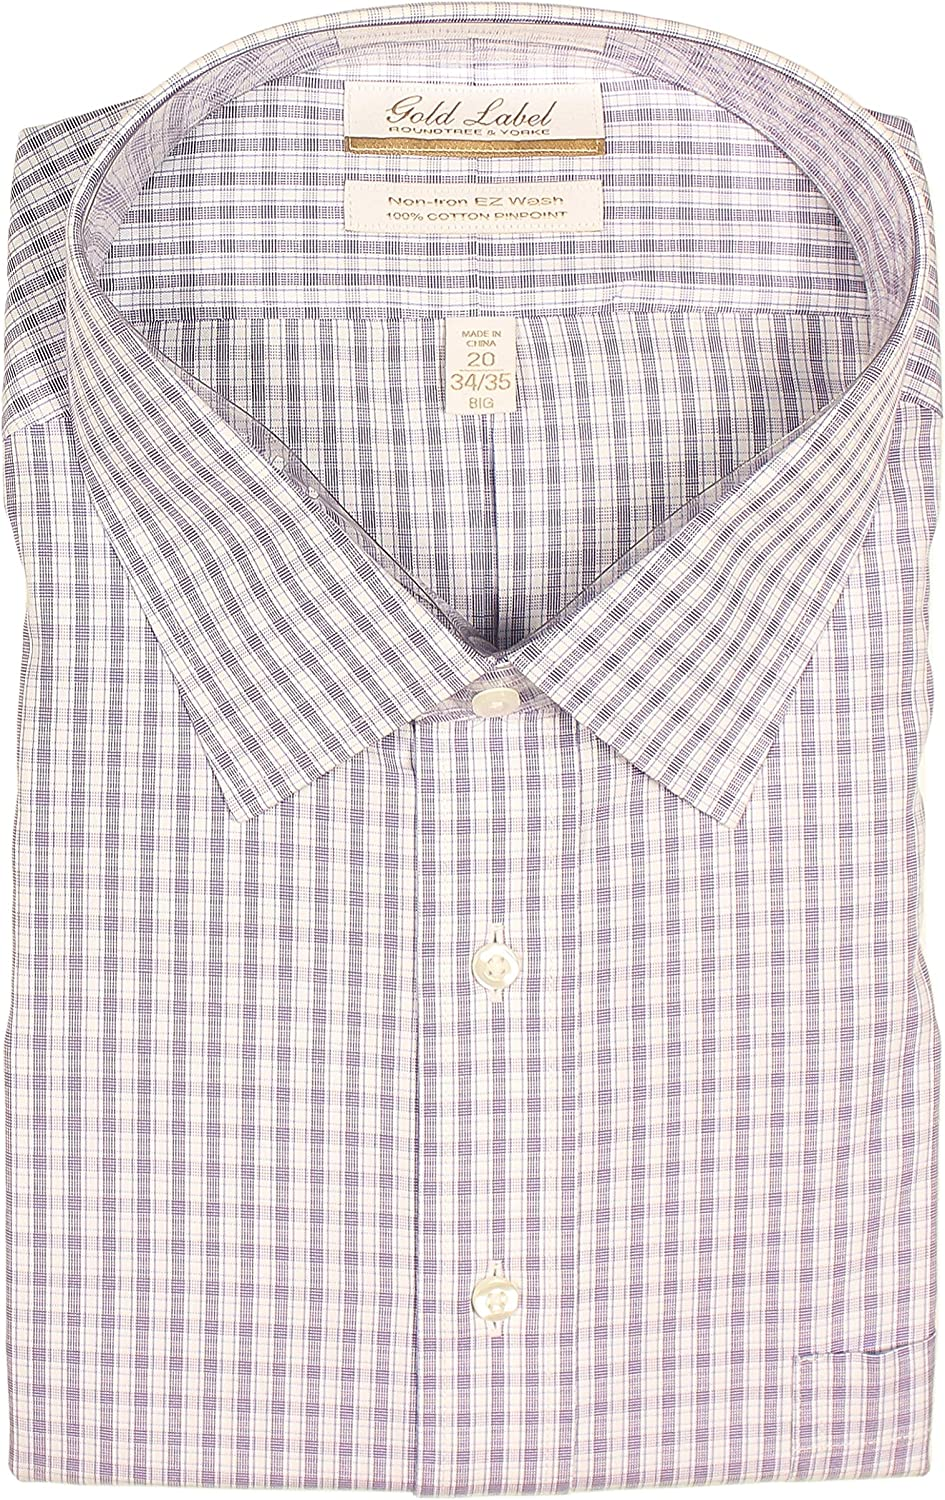 Gold Label Men's Big and Tall Non-Iron Wrinkle-Resistant Long Sleeve Dress Shirt with Spread Collar